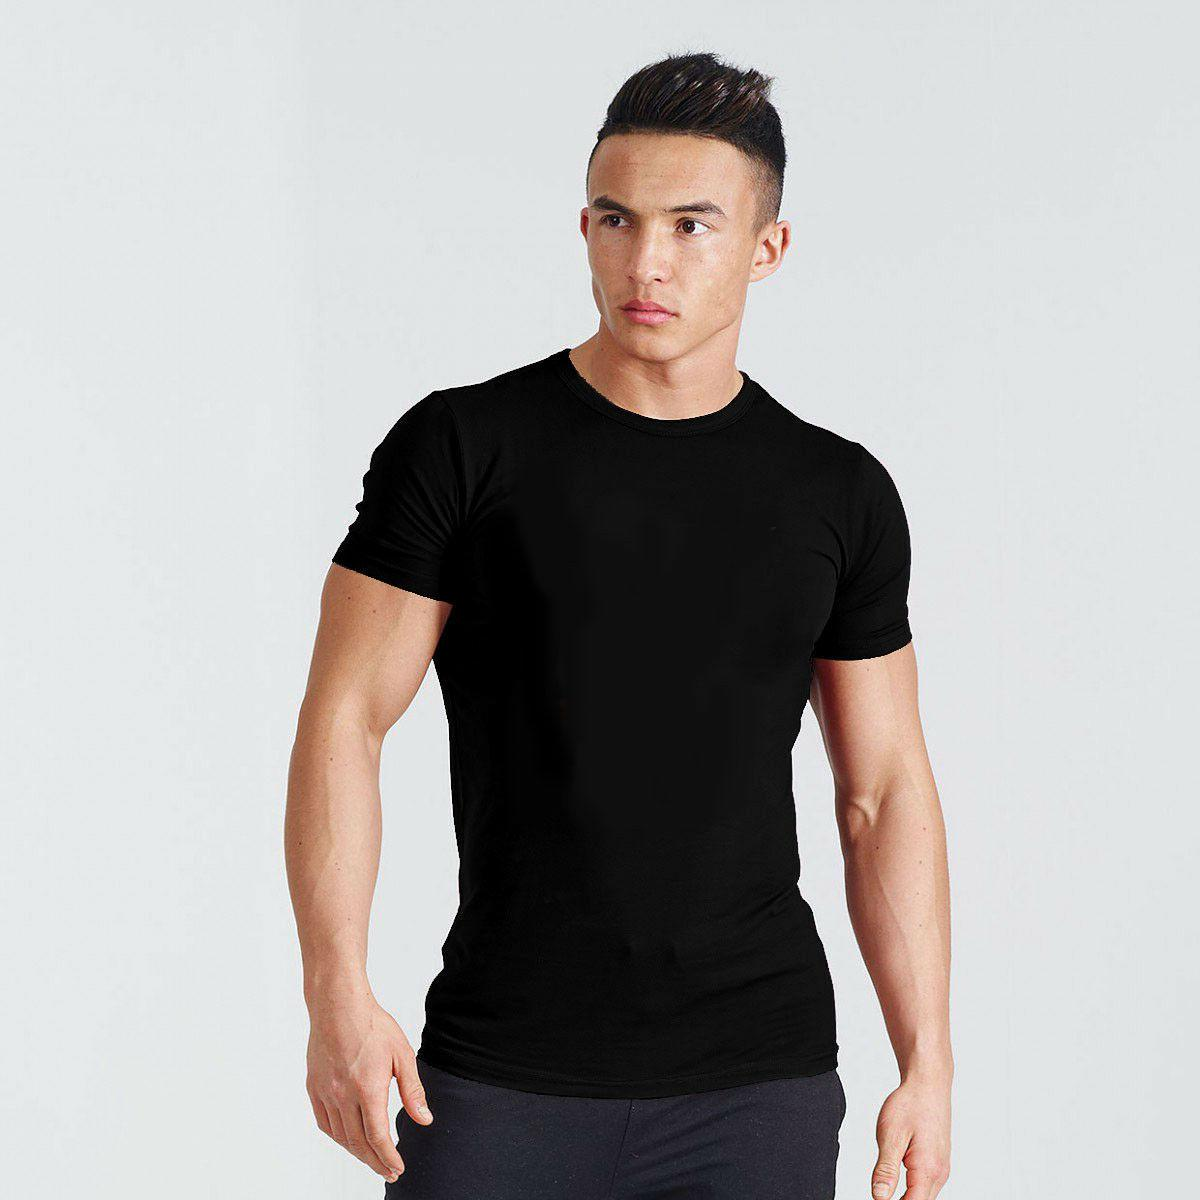 men s gym bodybuilding fitness cotton clothing